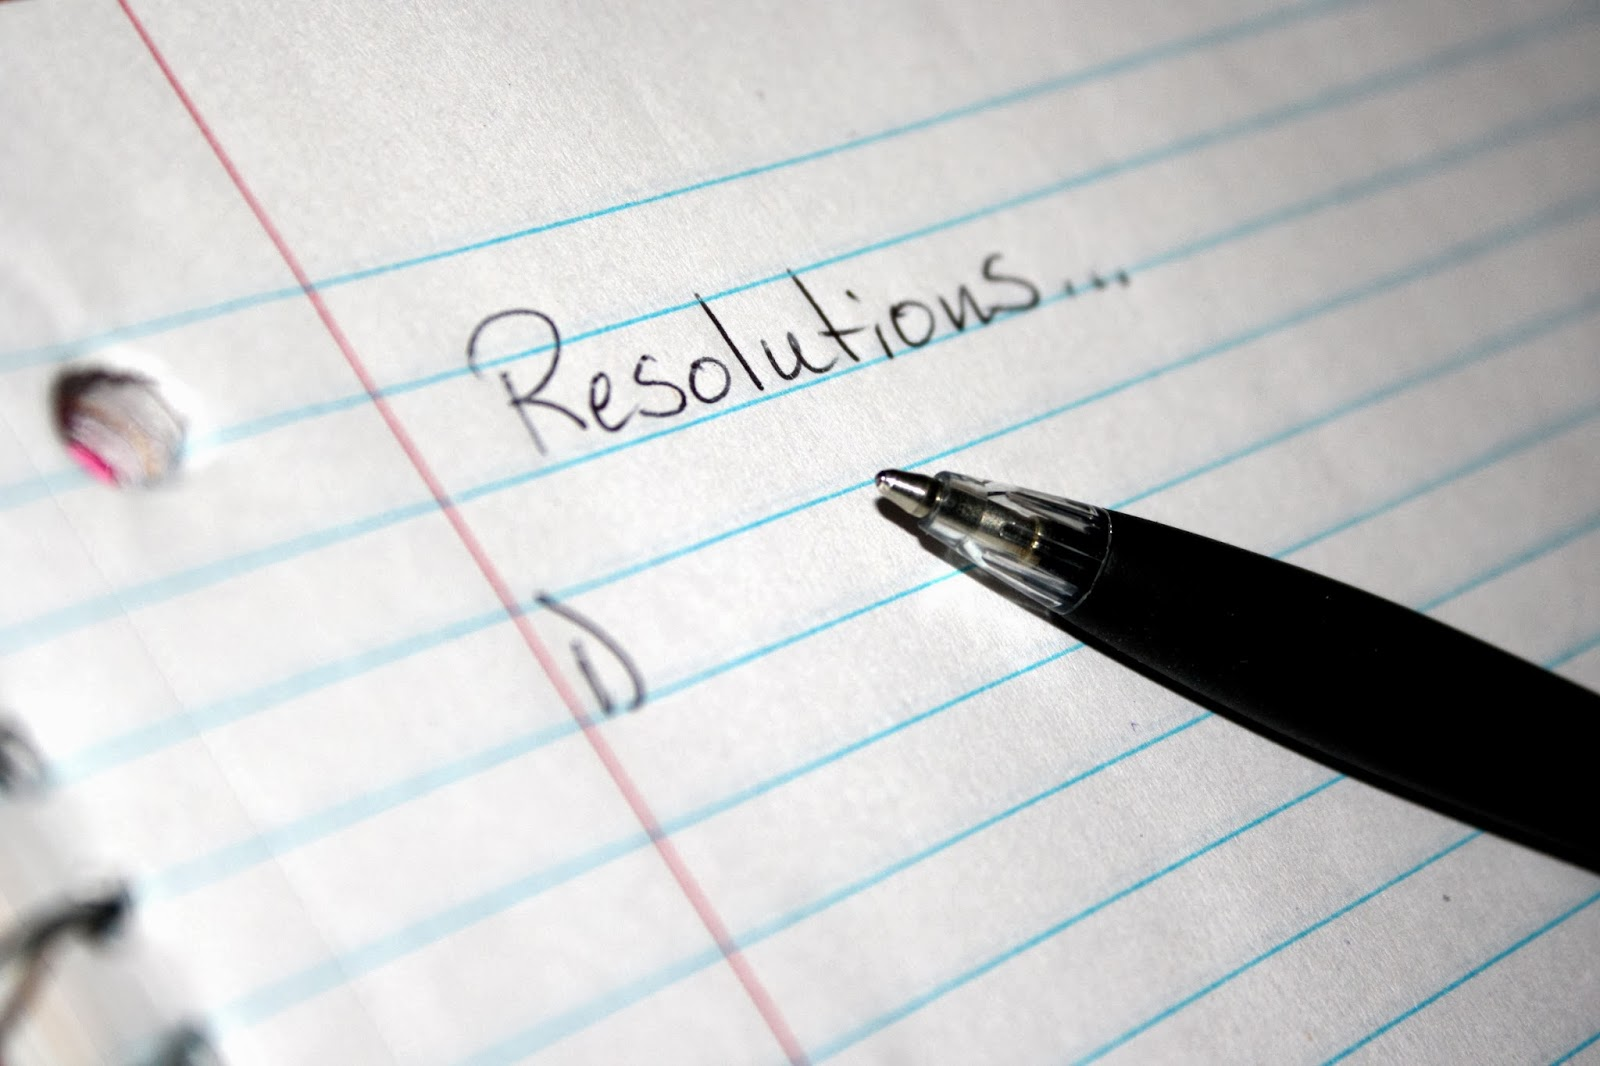 resolutions How shall I develop myself